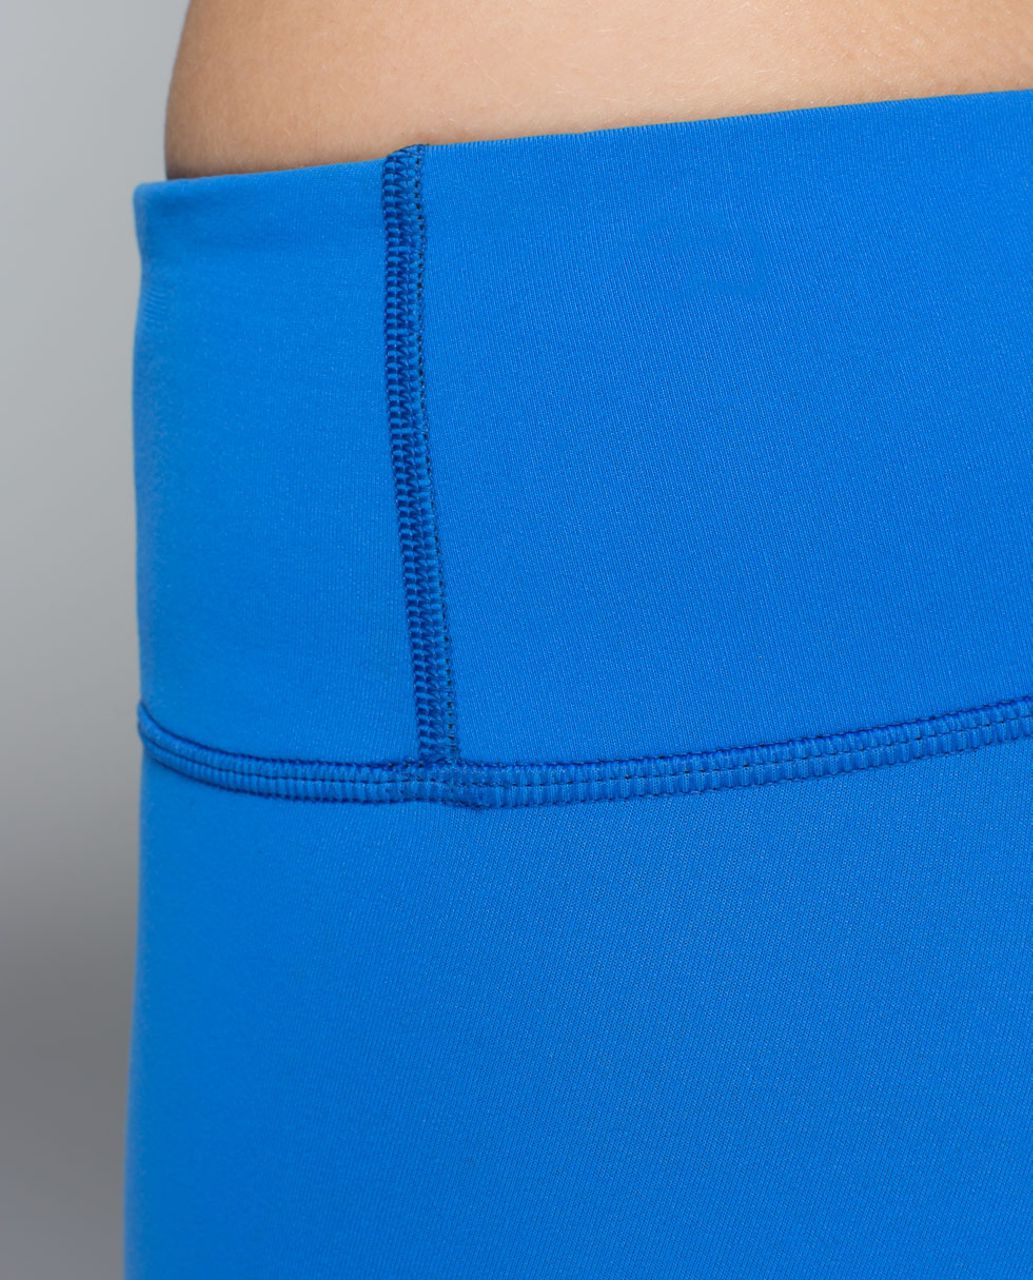 Lululemon Wunder Under Crop (Reversible) - Black / Pipe Dream Blue